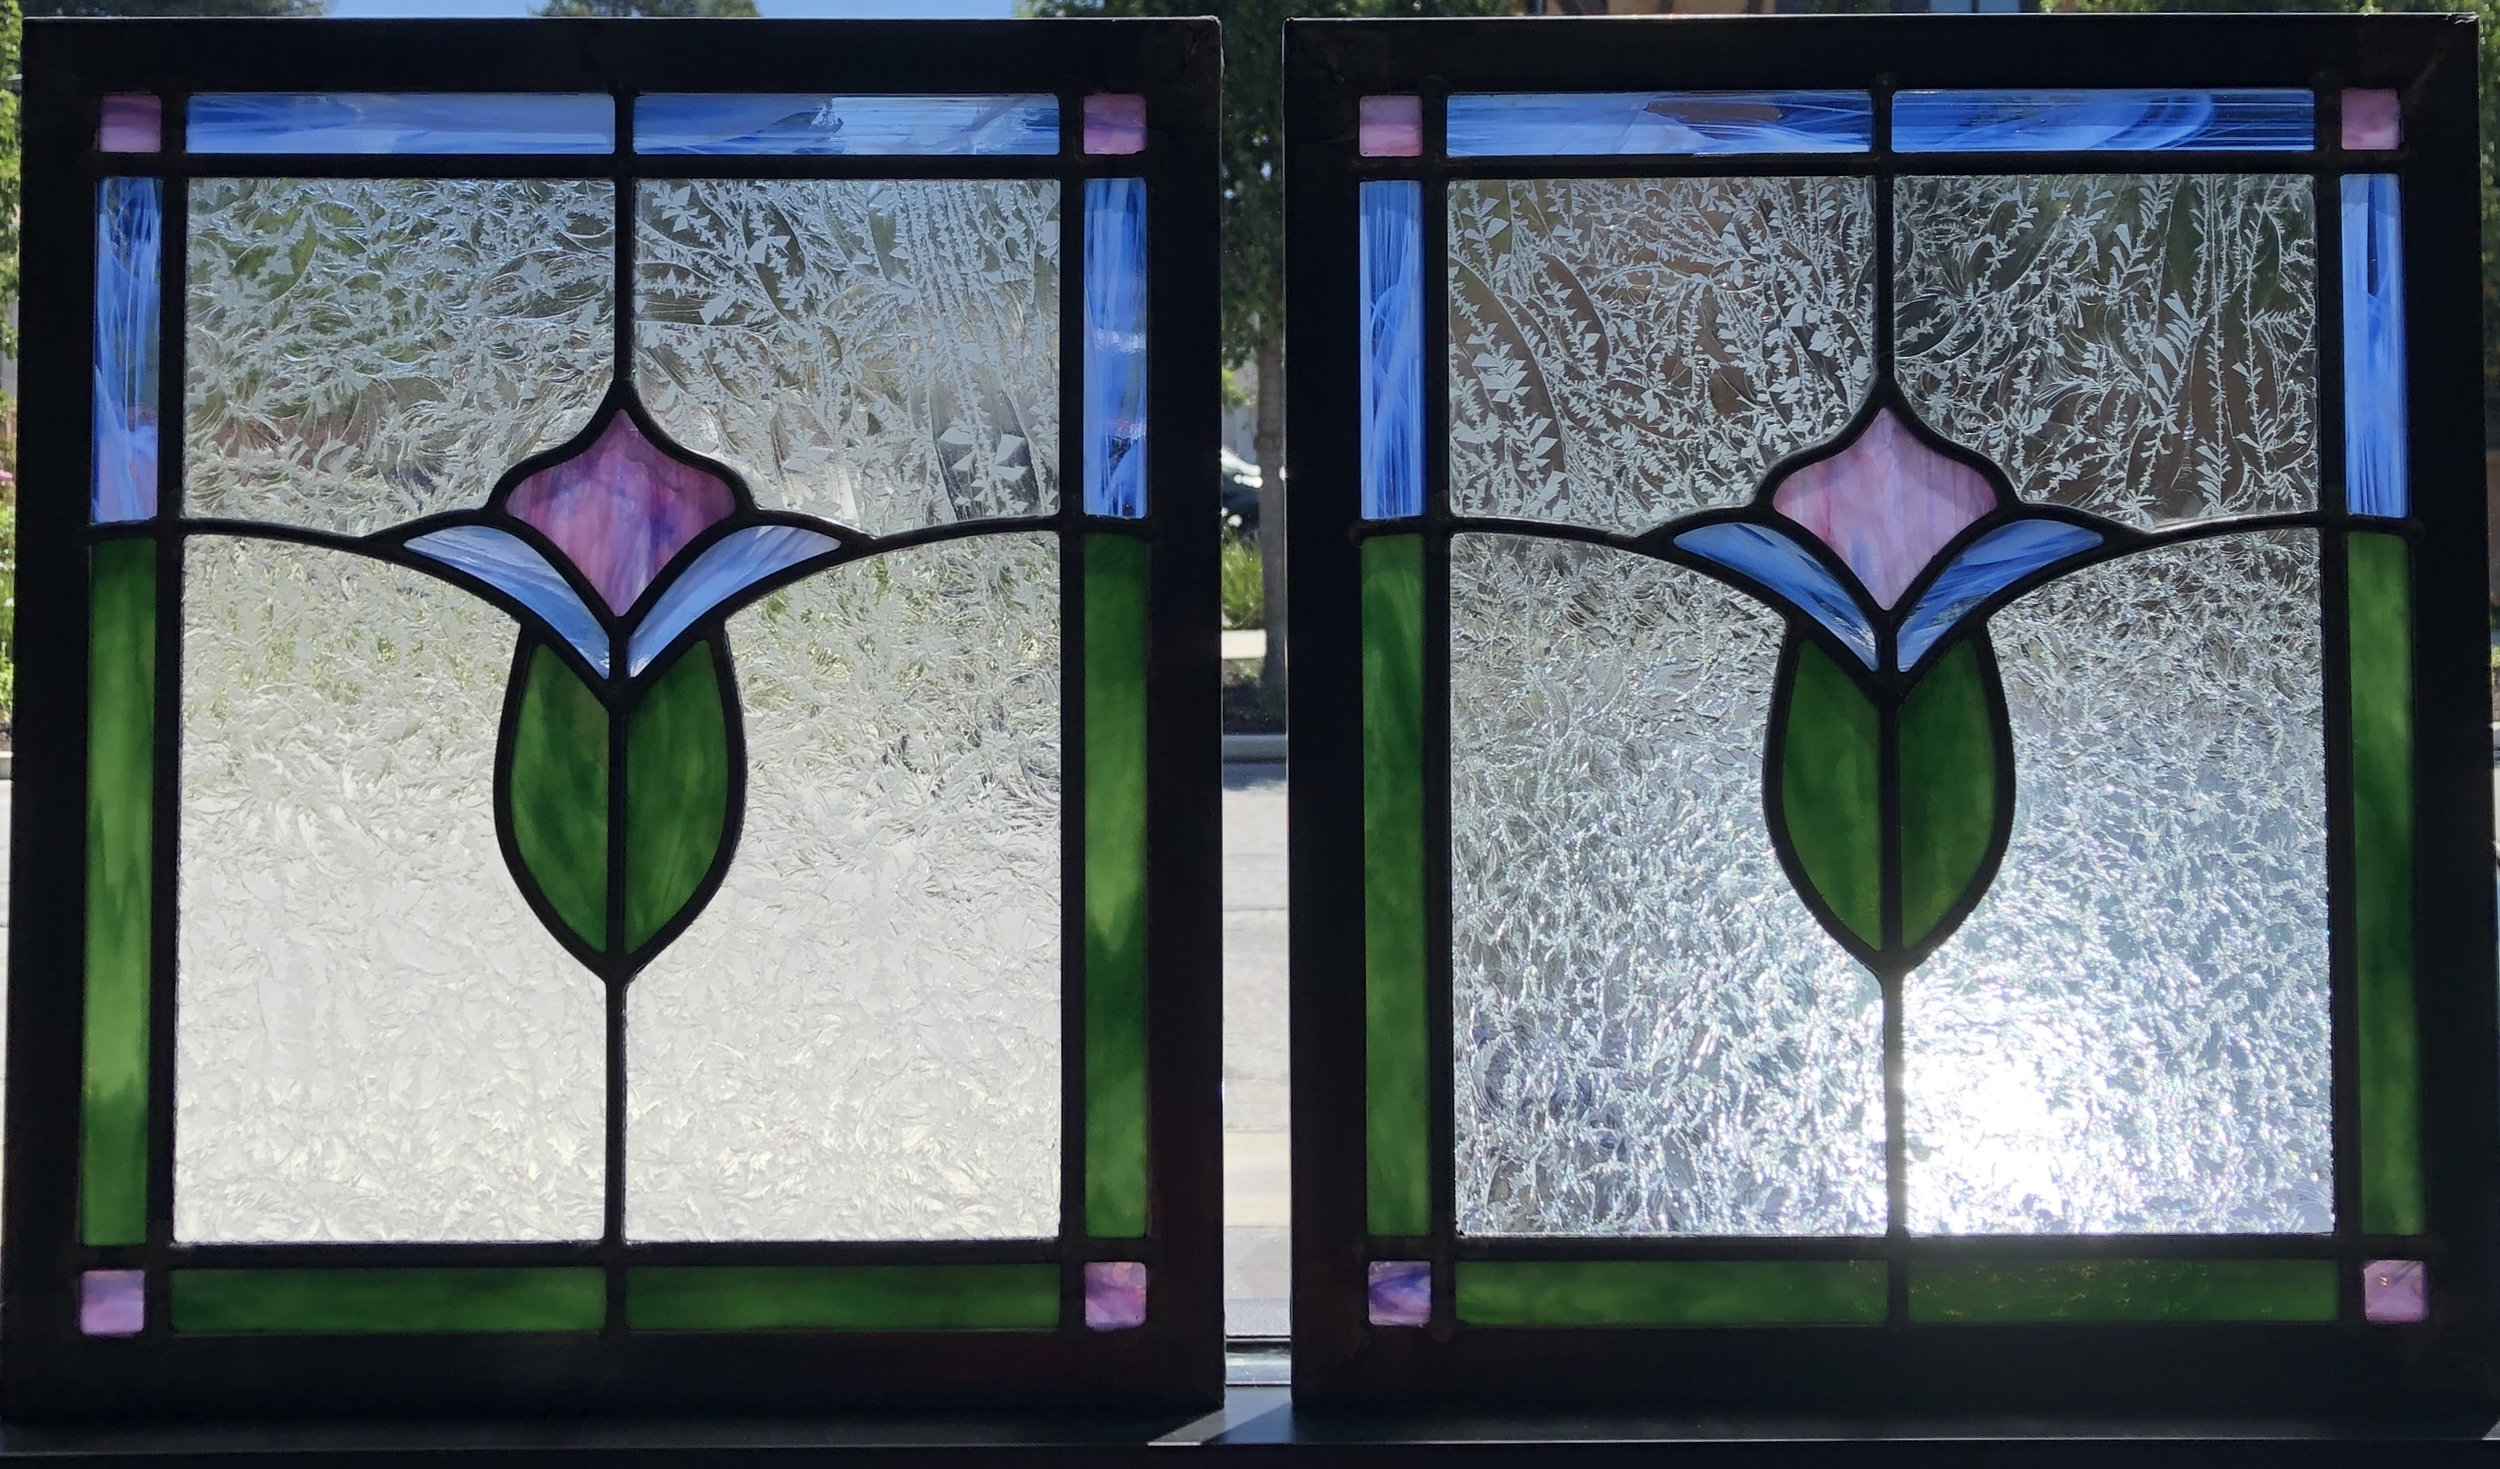 custom stained glass leaded glass craftsman floral motif glue chip front door glass insert whimsical colorful.jpg